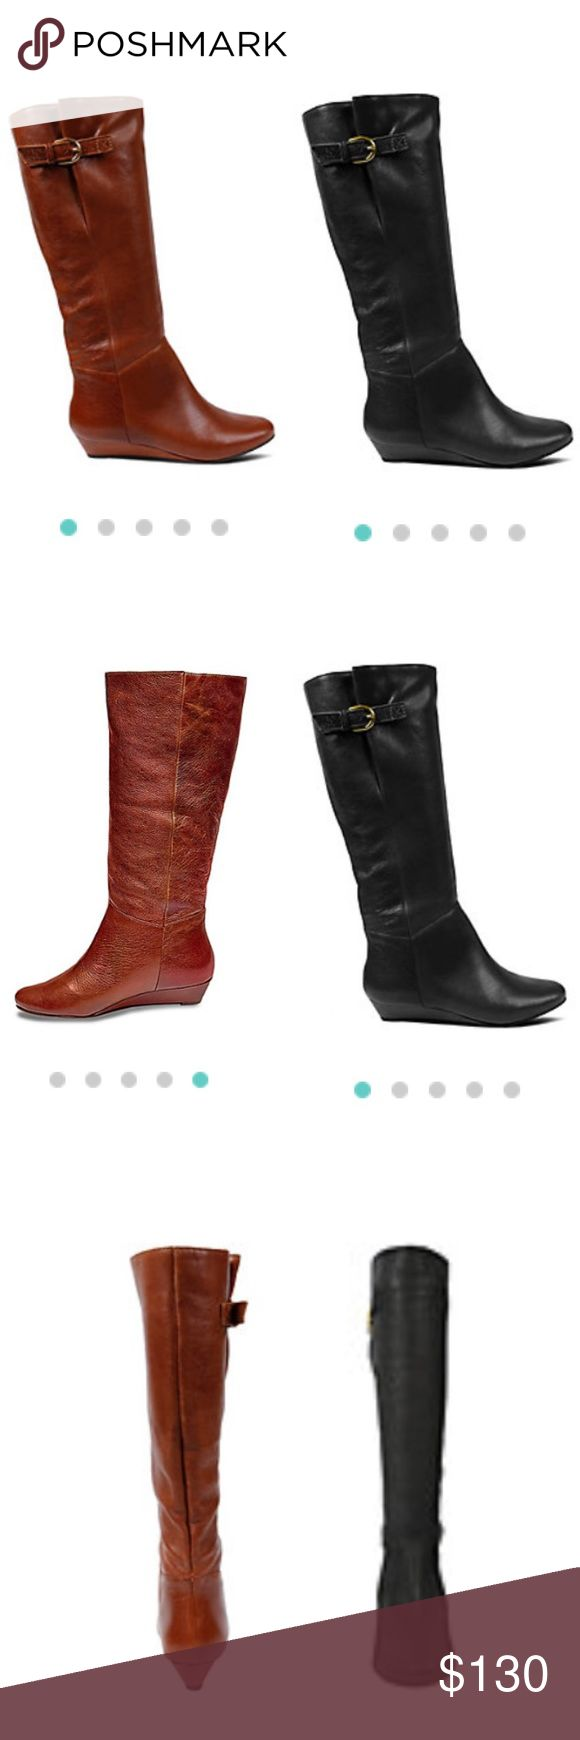 Steve Madden Intyce Boots (2 for the piece of 1) Two Pairs of Steve Maddwn Boots in Size 8 Retail at $149.95 each Cognac Leather | Black Leather   Lightly worn with love and care  The INTYCE is just plain gorgeous! Show off the buckle detail by pulling them over your skinny jeans, or pair them with your favorite mini dress for a full-blown fashion look.  Leather upper material Man-made sole 1 inch sliver wedge Approx. 20 inch shaft circumference 15.75 inch shaft height Steven by Steve Madden…